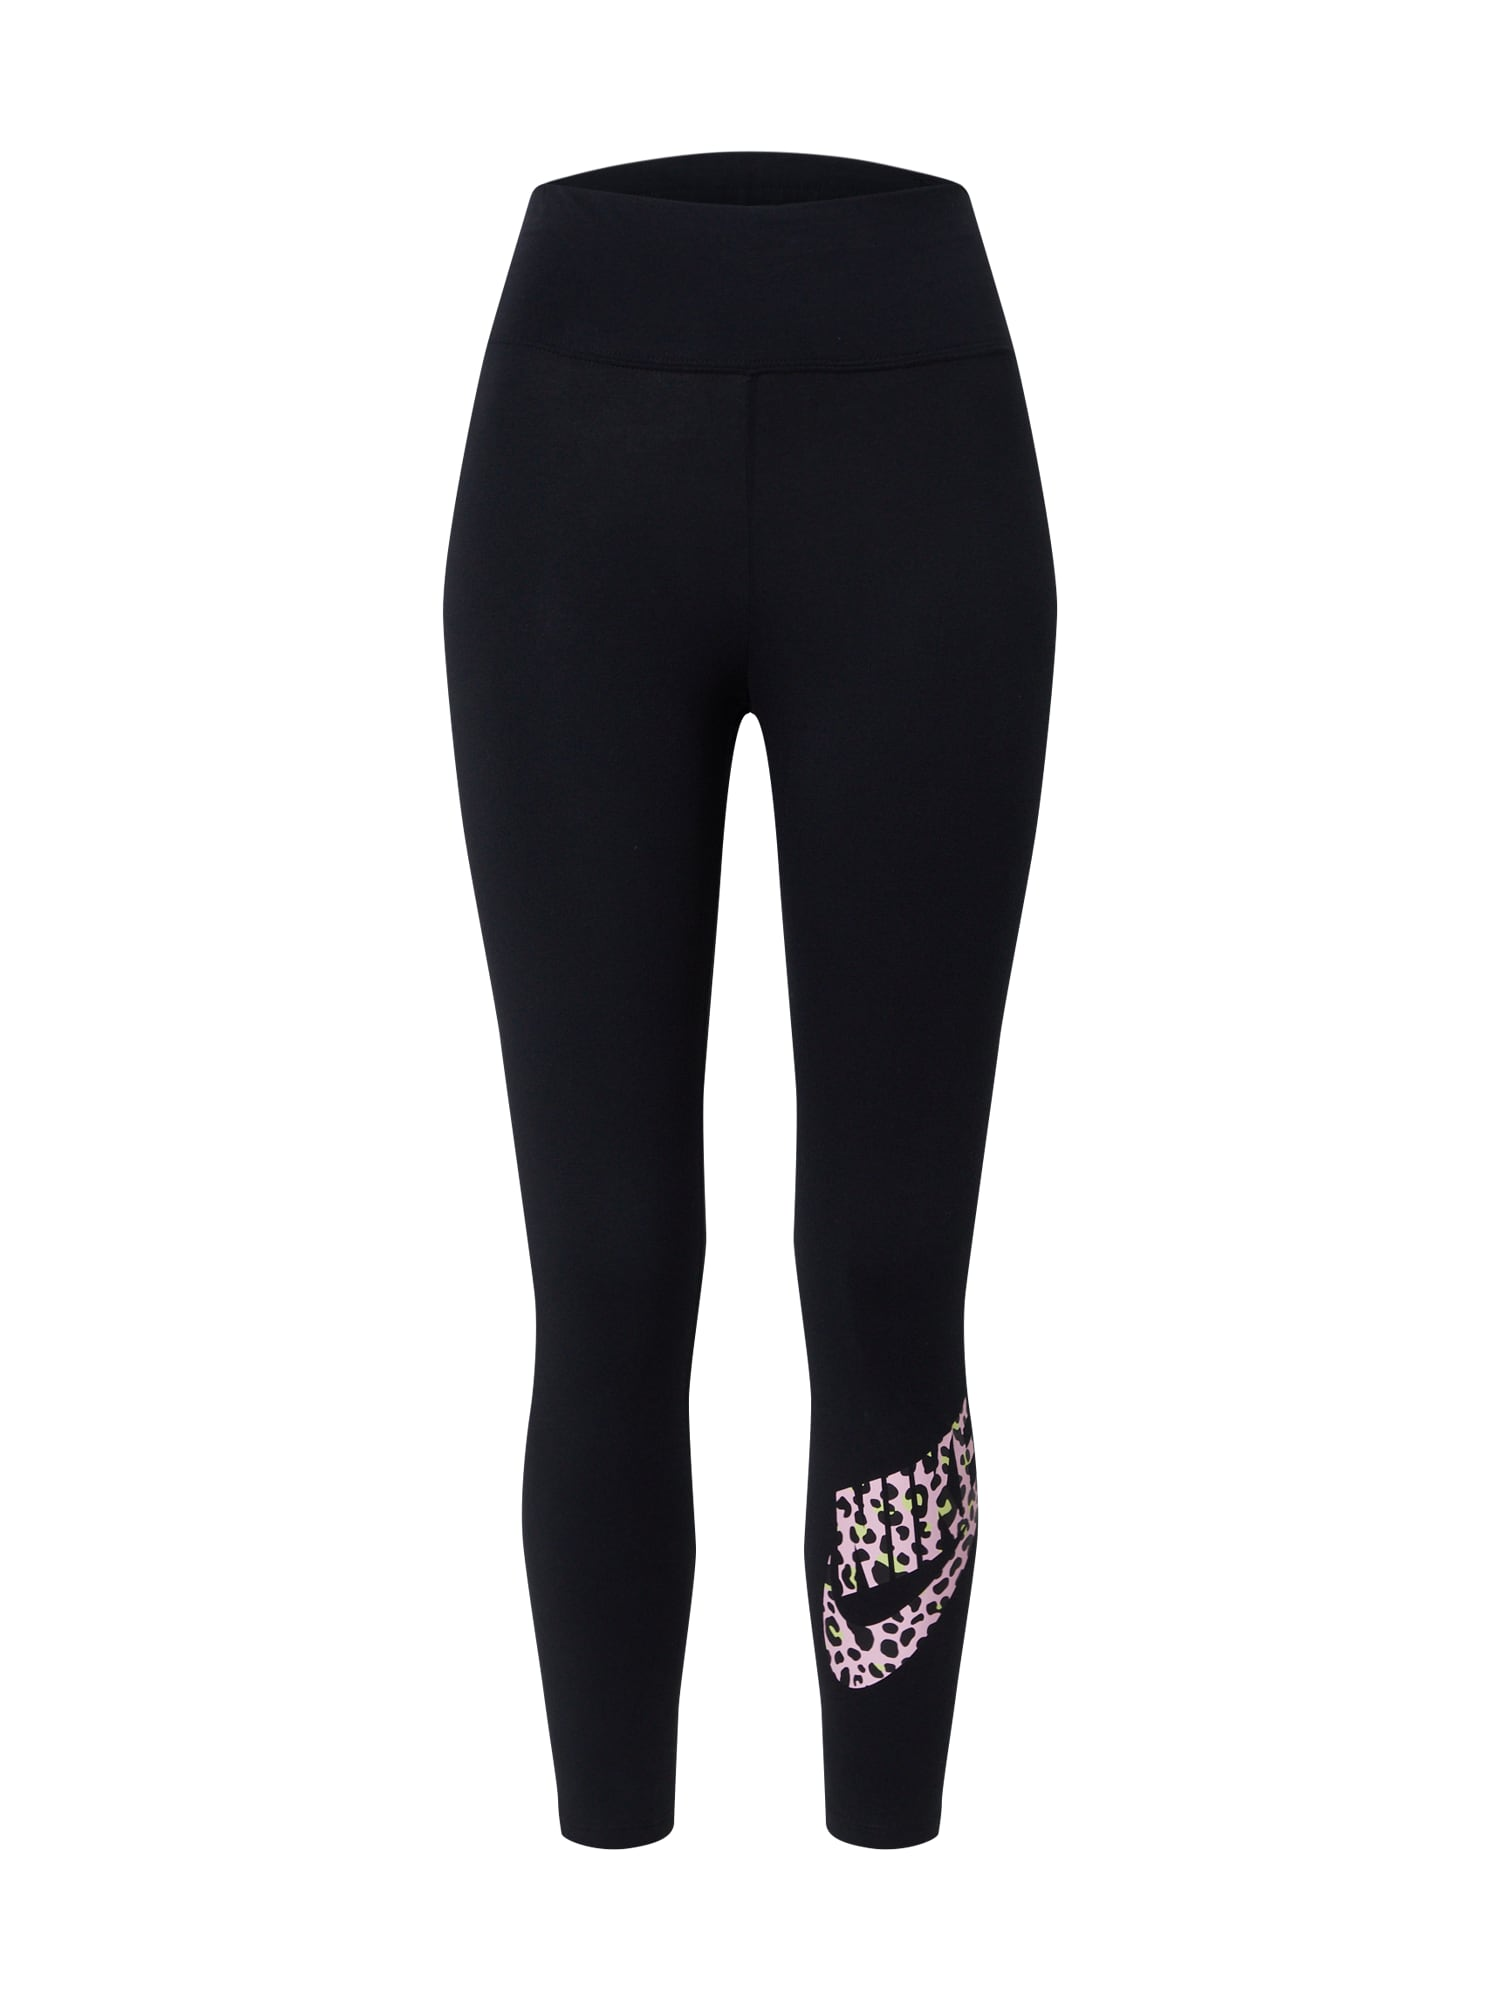 Tight | Bekleidung > Homewear > Leggings | Nike Sportswear